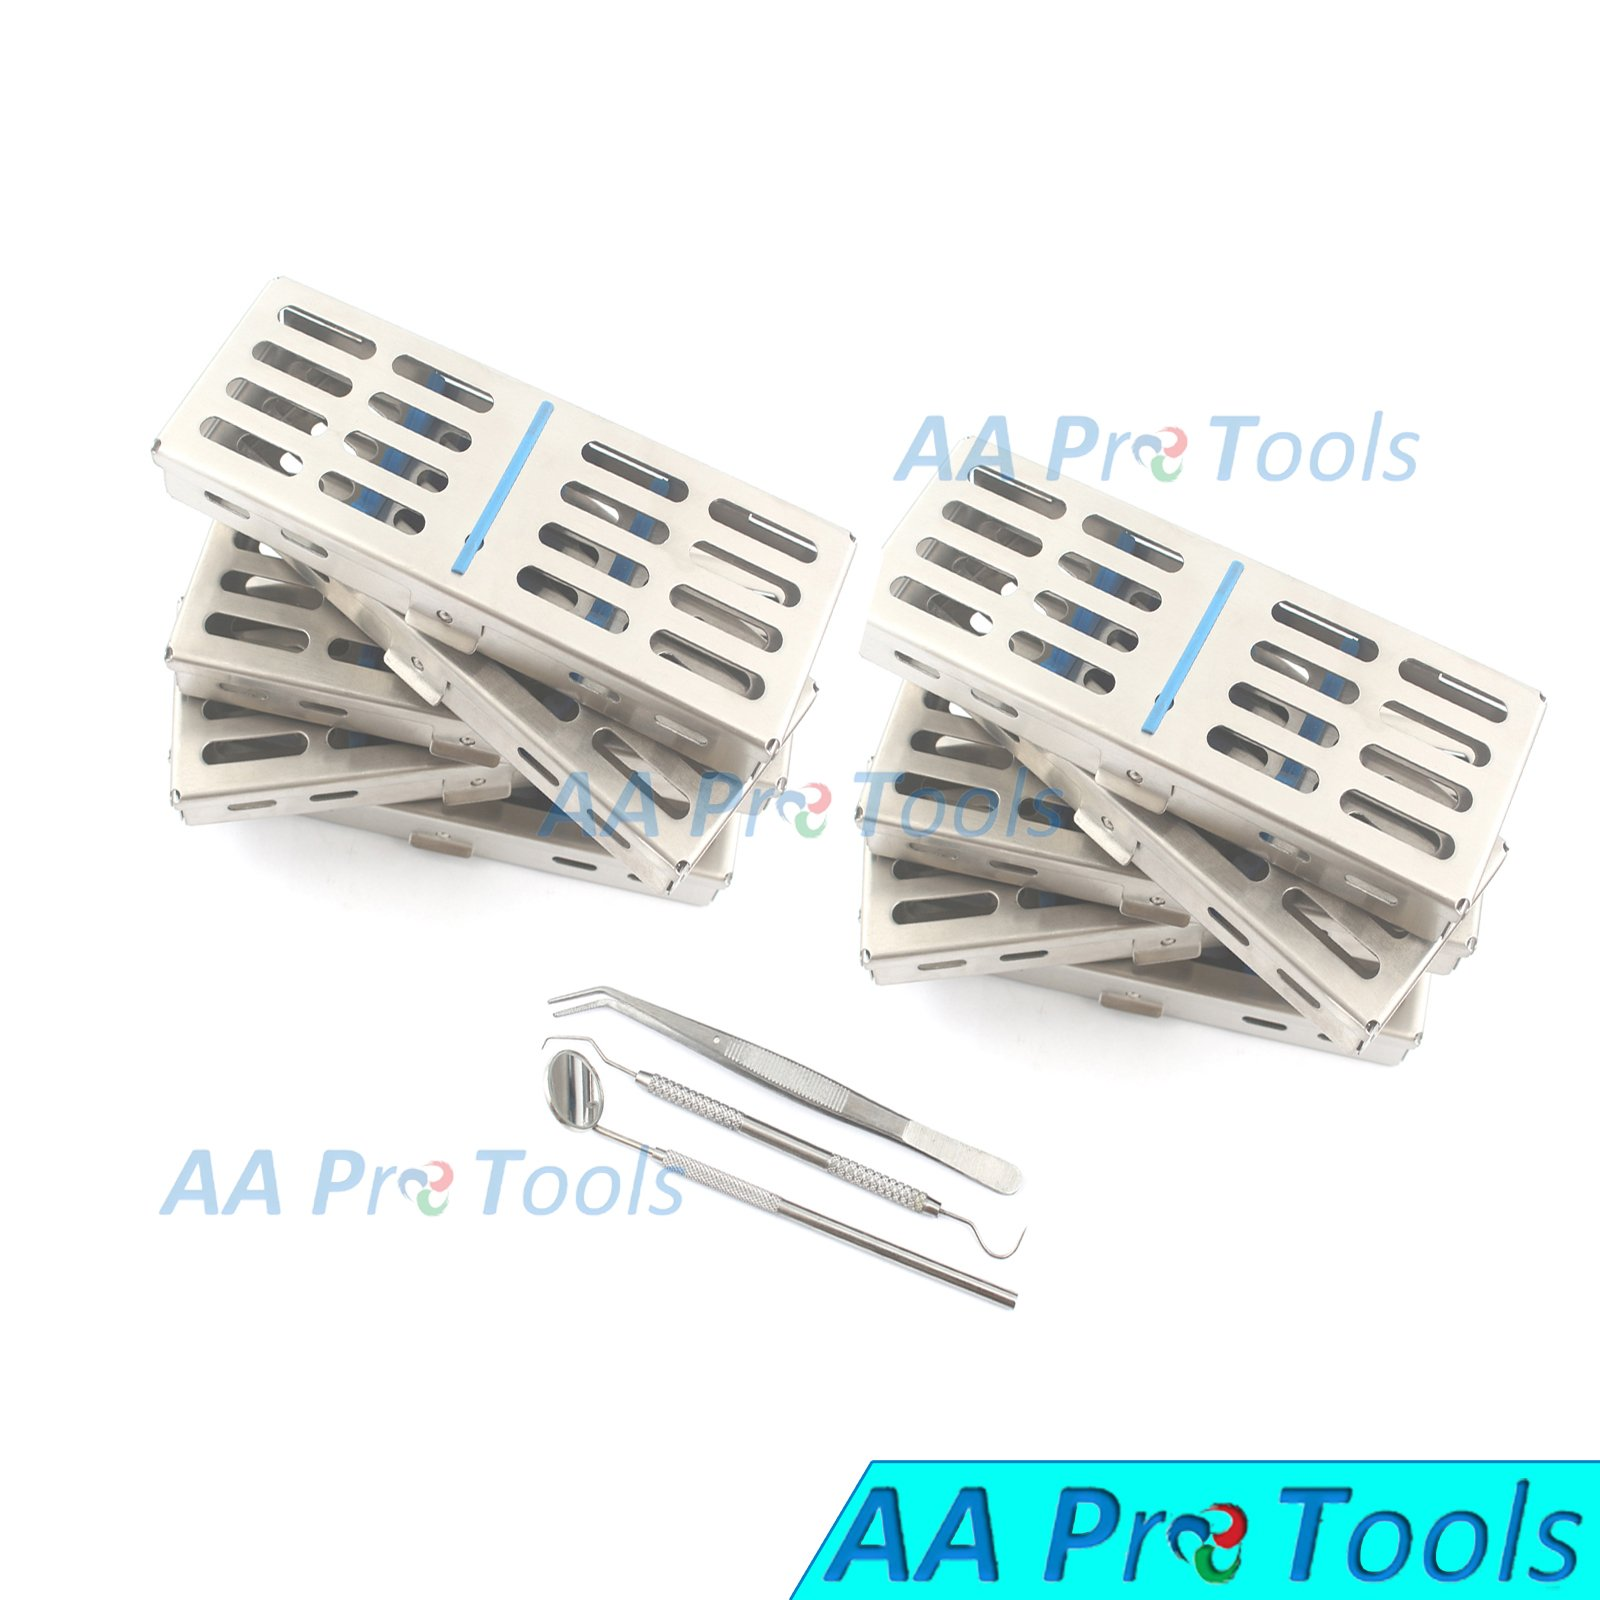 AA PRO NEW SET OF 10 EACH GERMAN GRADE DENTAL AUTOCLAVE STERILIZATION CASSETTE RACK BOX TRAY FOR 5 INSTRUMENT+3 PCS DENTAL SET FREE A+ QUALITY